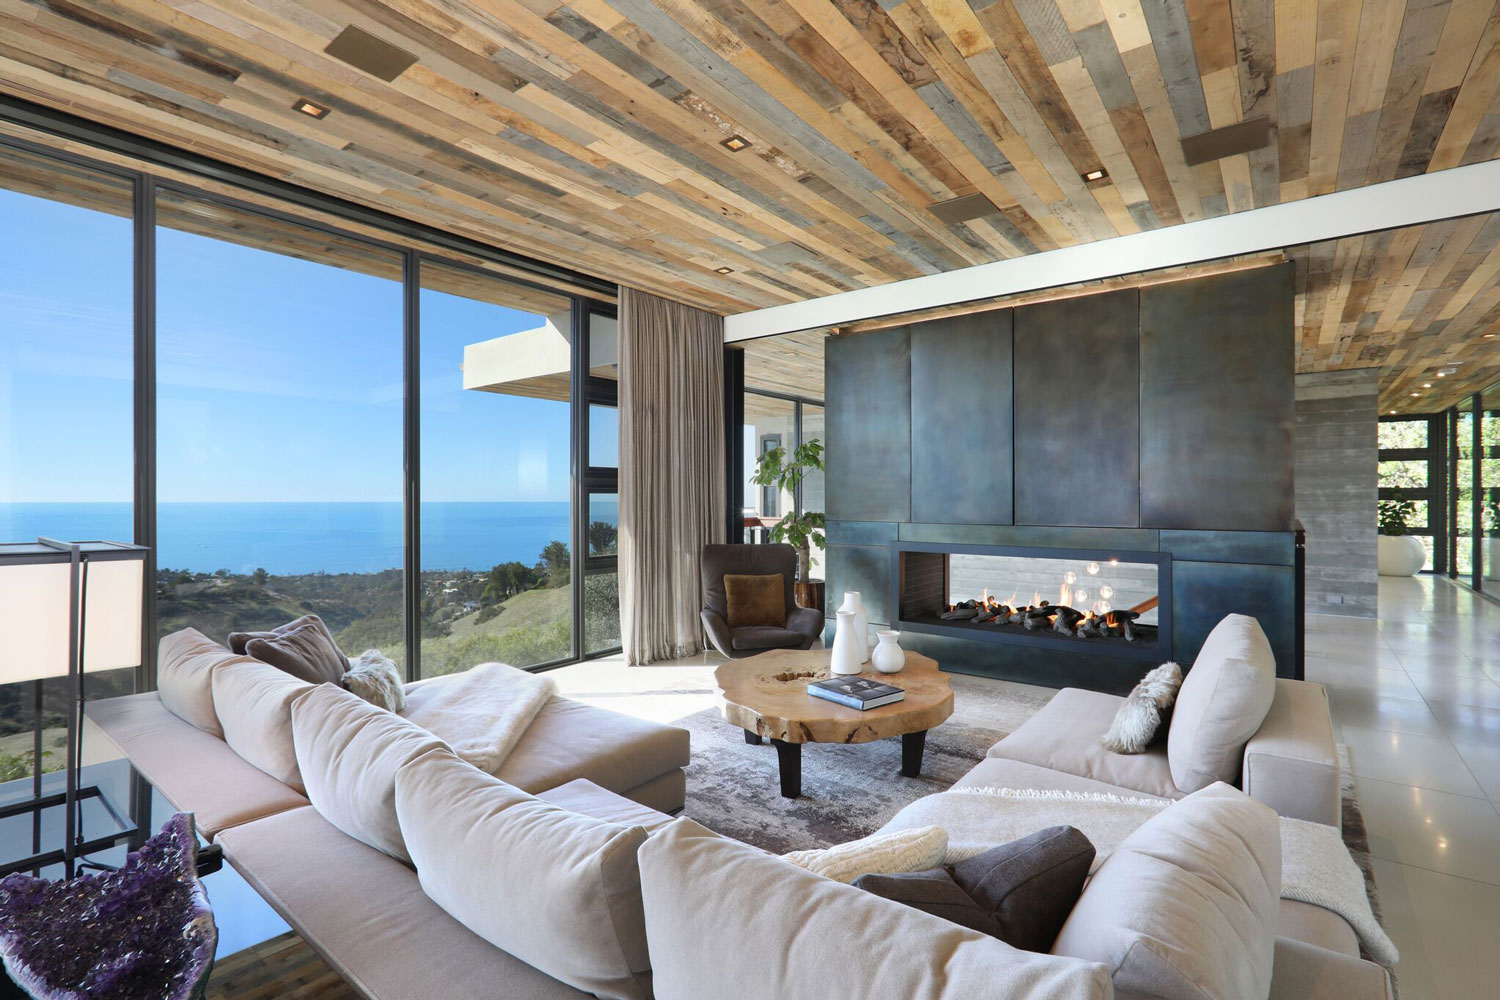 temple-hills-fireplace-living-room-view.jpg